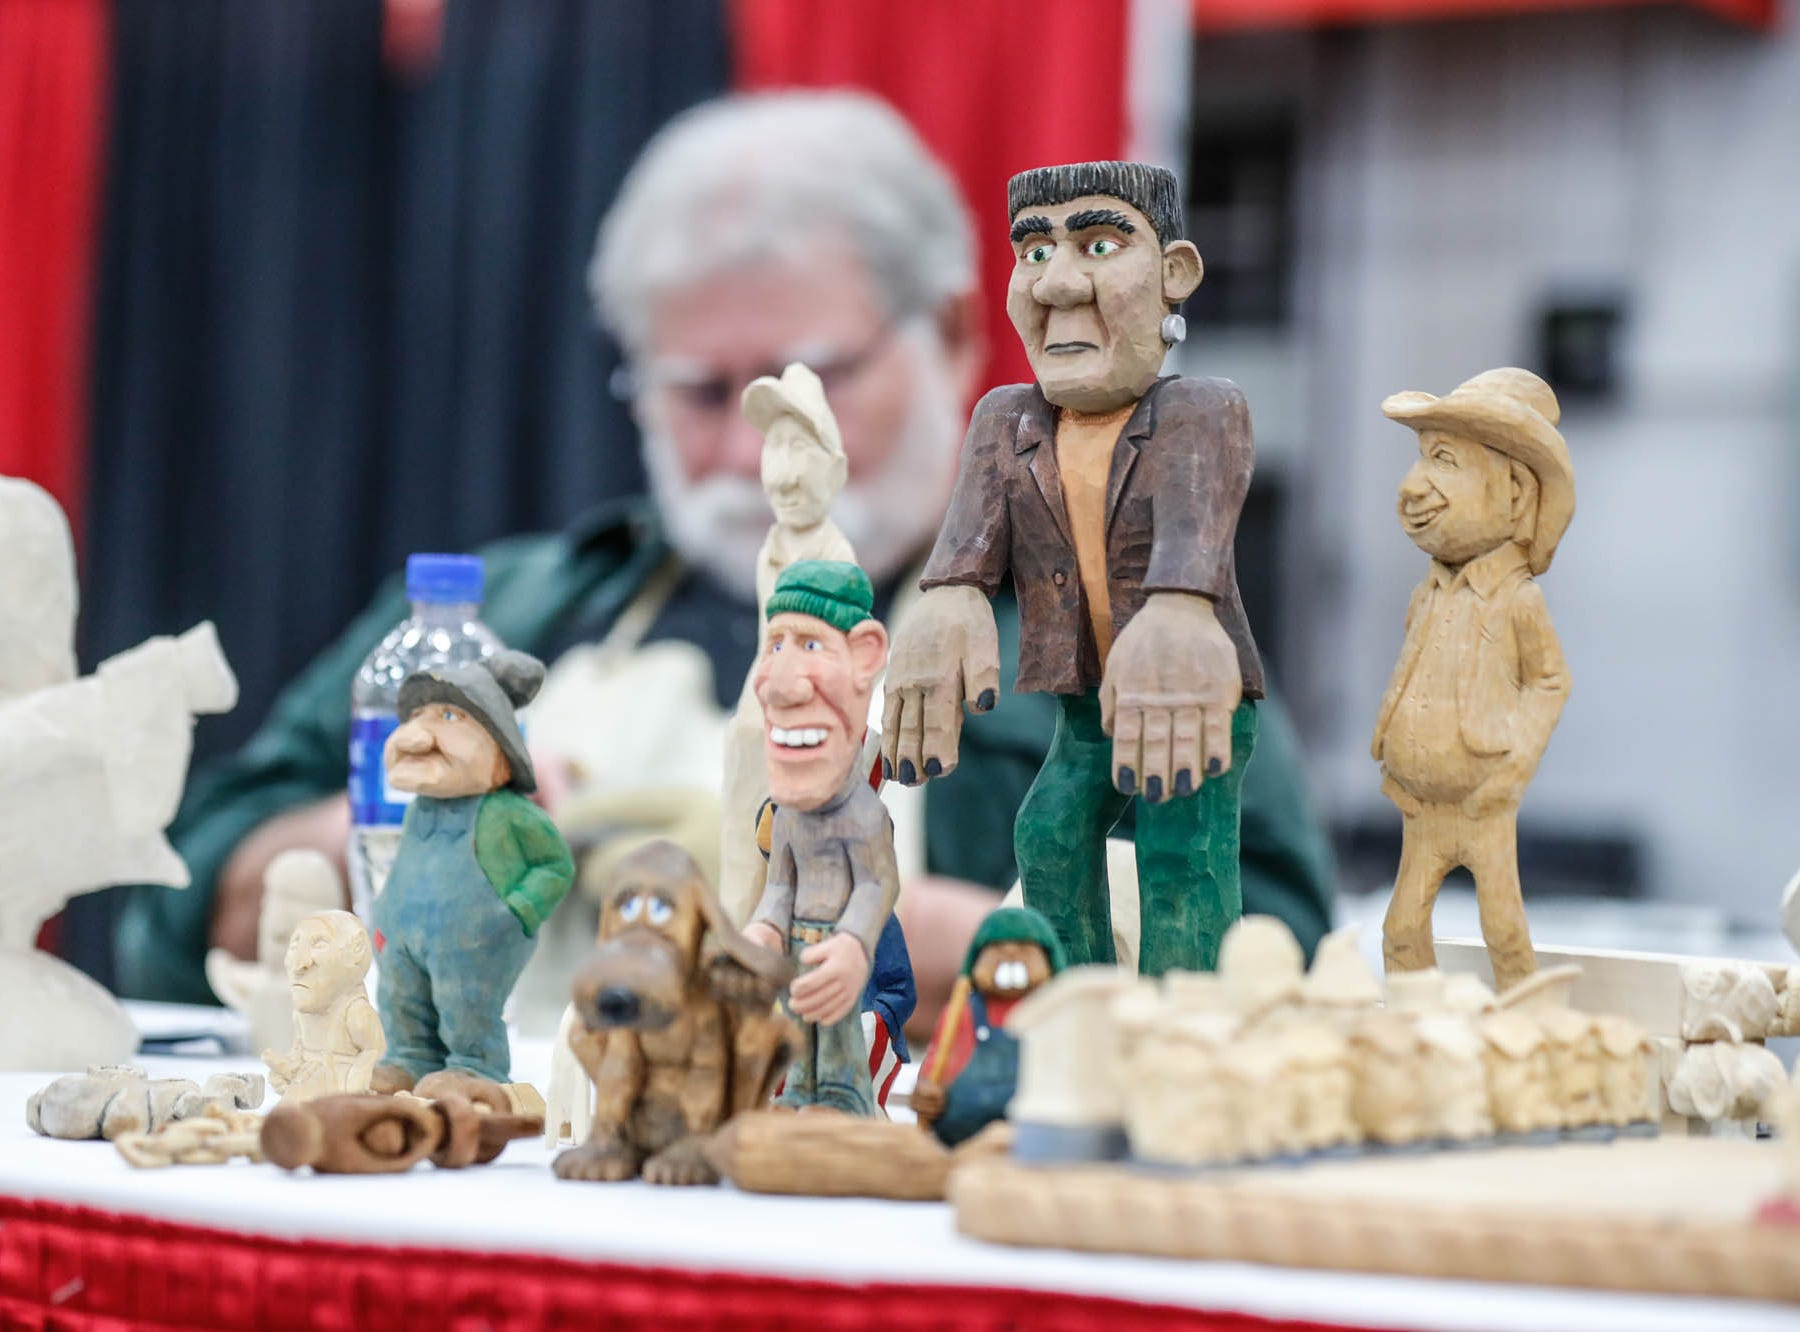 Work by wood worker Greg May, of the Circle City Carvers, is on display during a Wood Working Show at the Indiana State Fairgrounds in Indianapolis on Sunday, Feb. 3, 2019.